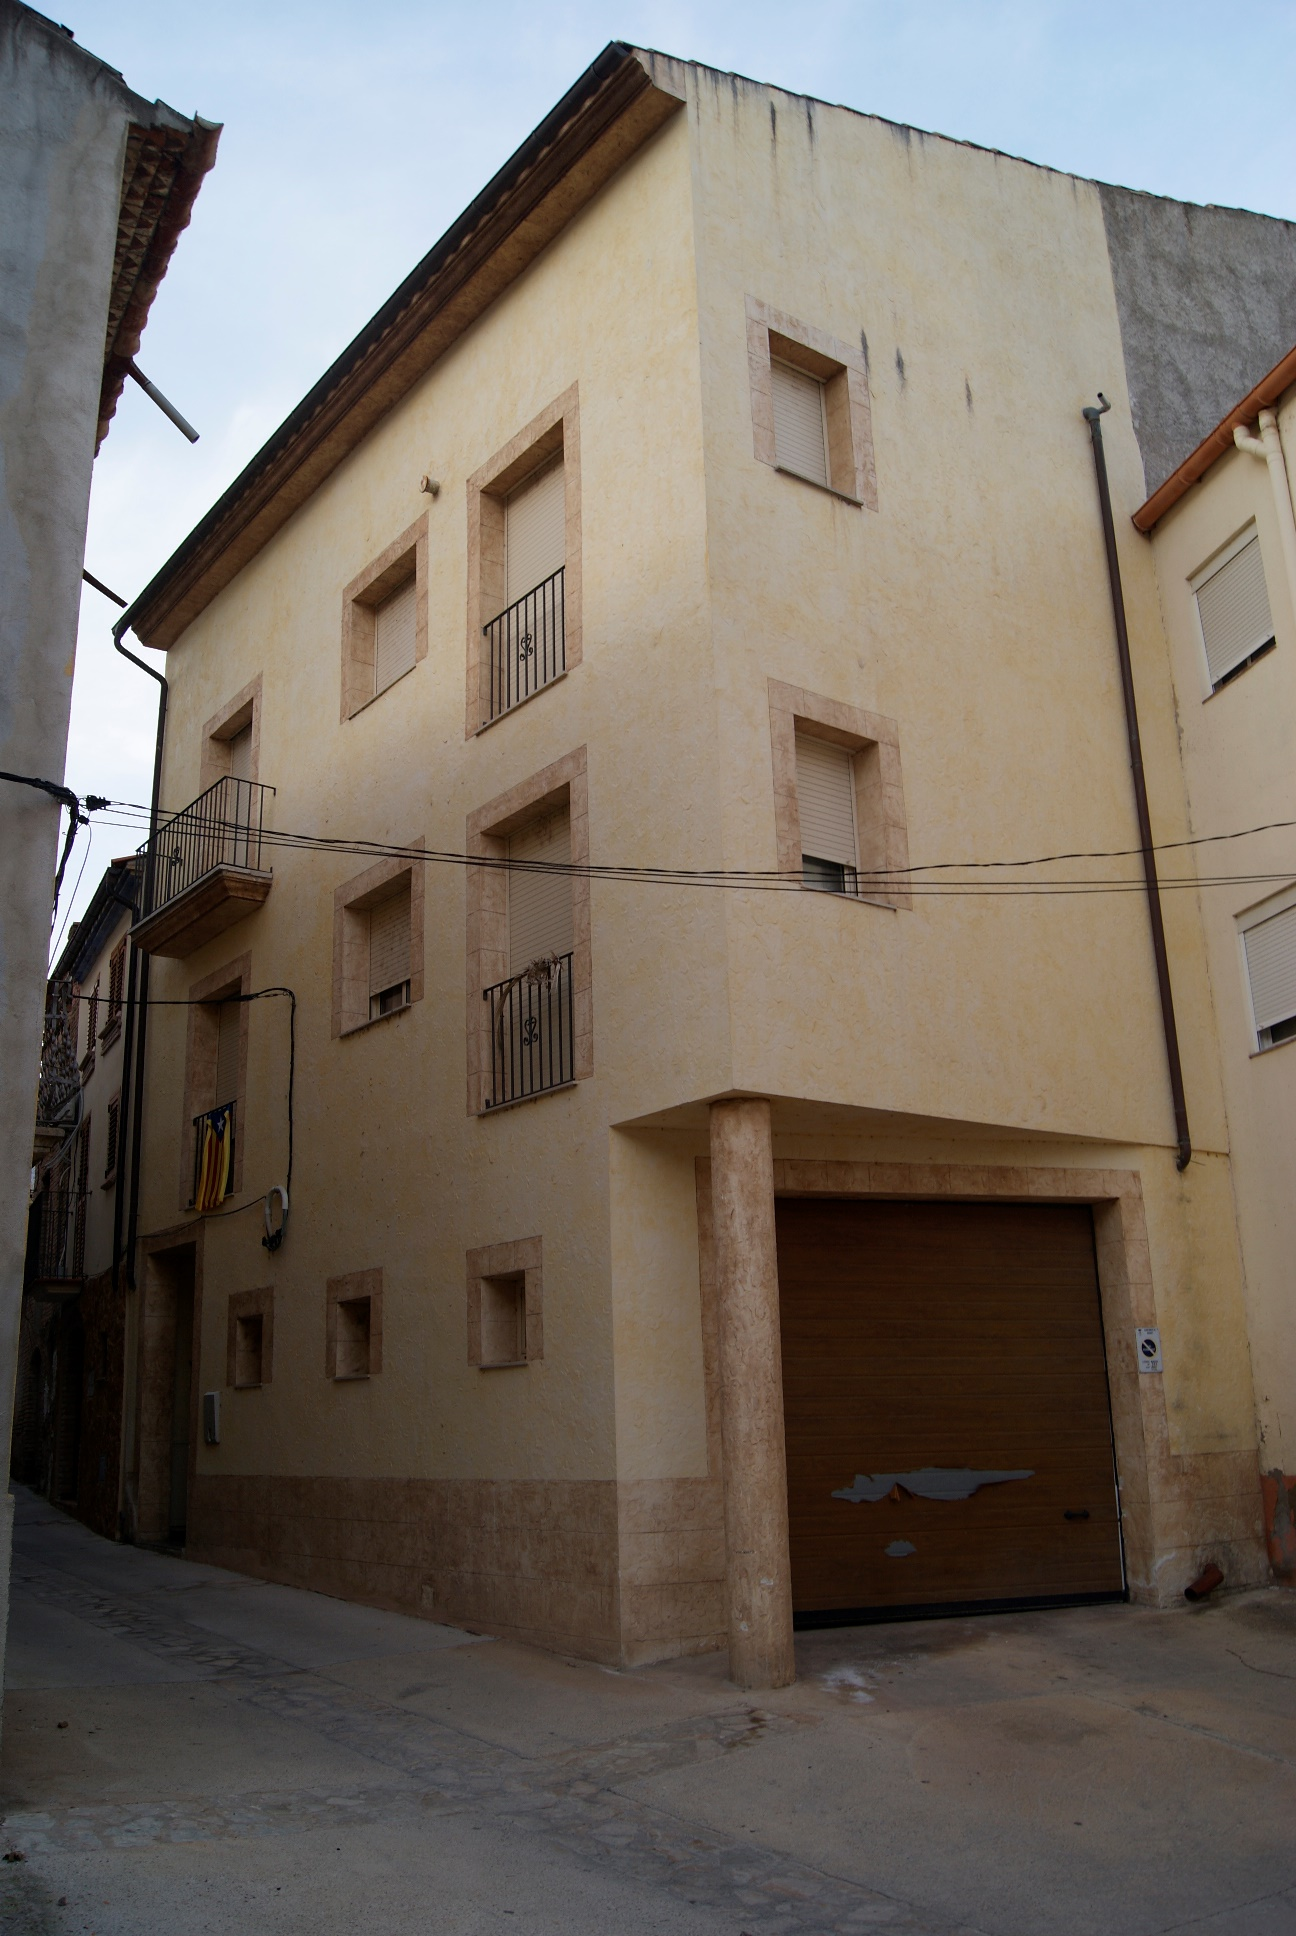 miravet, 3 Bedrooms Bedrooms, 1 Habitació Rooms,2 BathroomsBathrooms,Casa de Poble,Urbana,miravet,1089